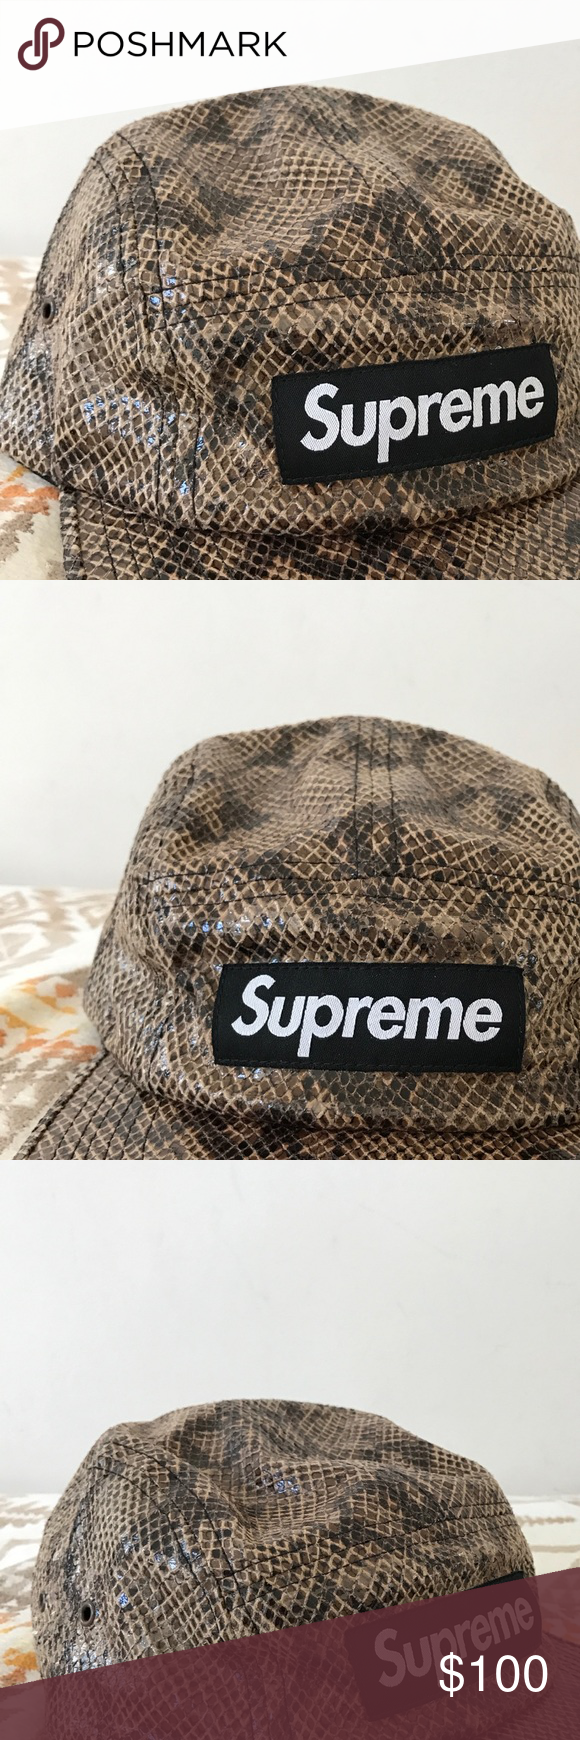 Supreme Box Logo Snake Skin Hat Authentic supreme snakeskin hat. 9.5 10  condition. Worn once. Will negotiate if reasonable price is offered Supreme  ... a155984fb92